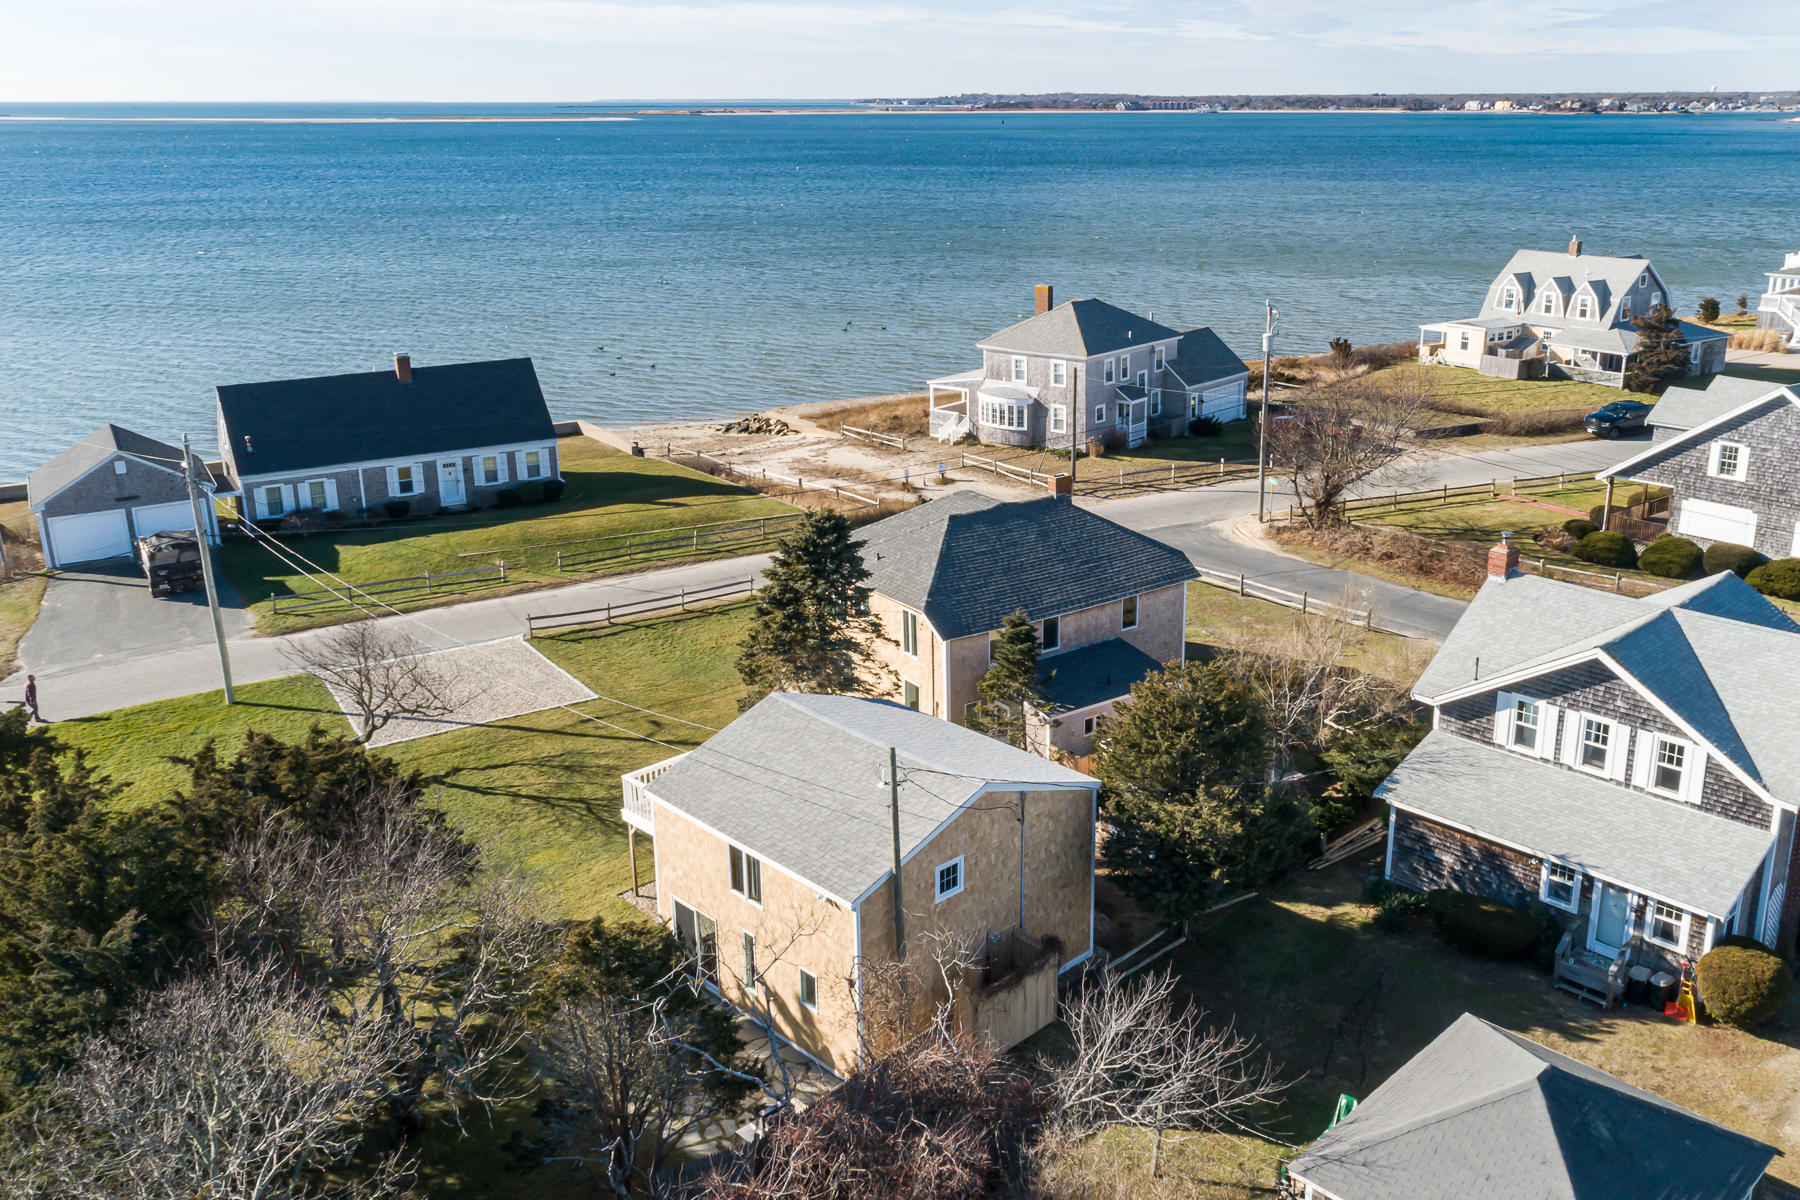 32 Shore Road, West Yarmouth MA, 02673 details